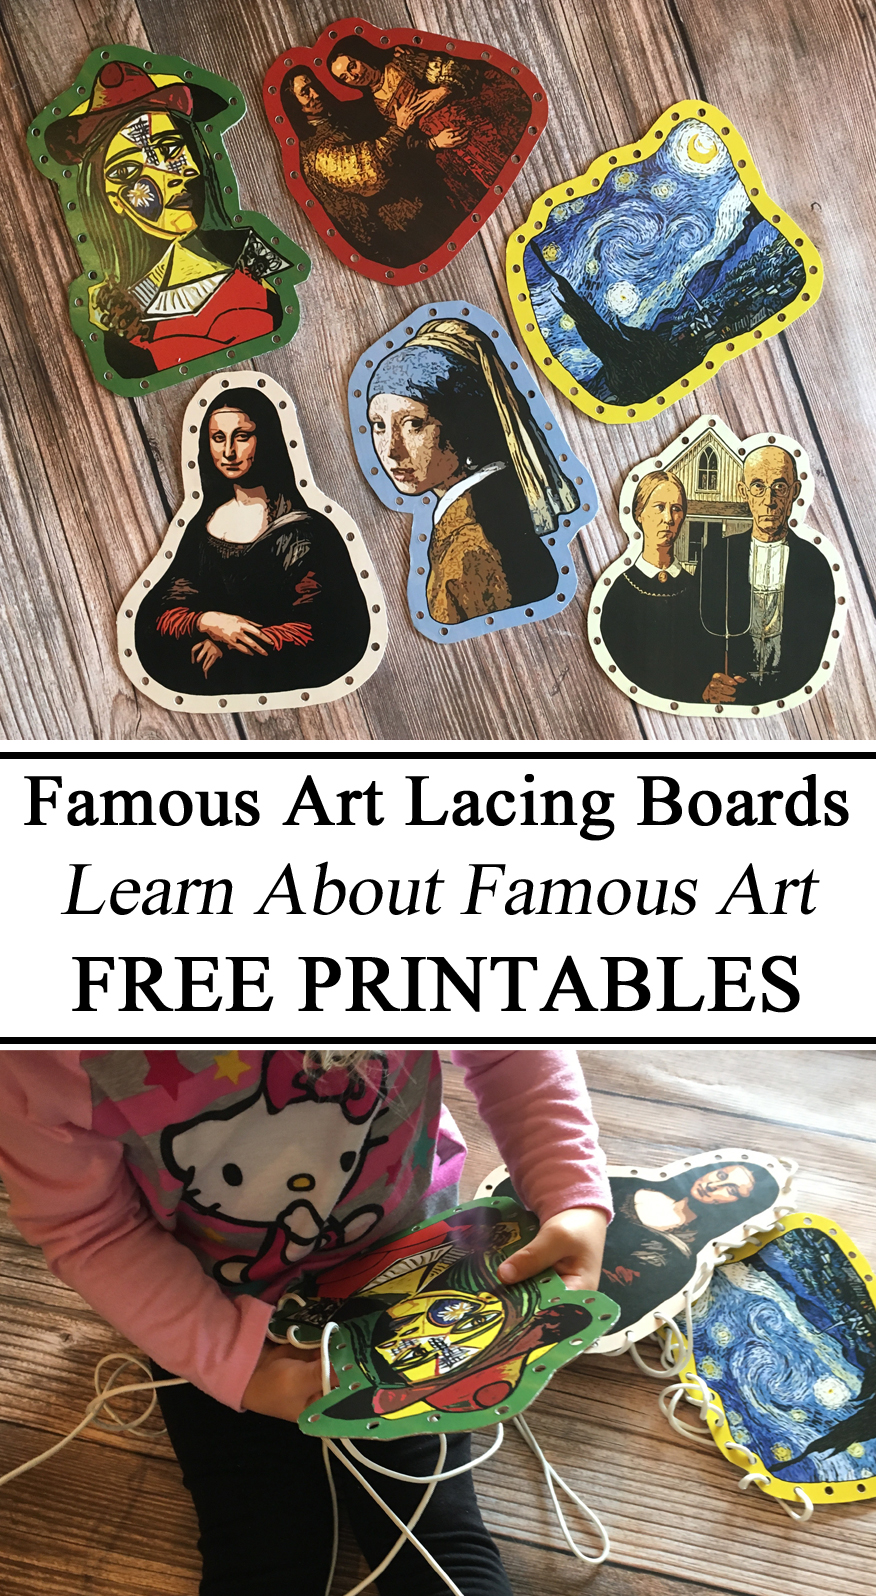 Art Study, History, Famous Paintings, Lacing Boards, DIY, Cardboard, Free Printables, Printables, Art History Unit, Fine Motor Activity, Hands On Learning, DIY, Teacher Resources, Educational